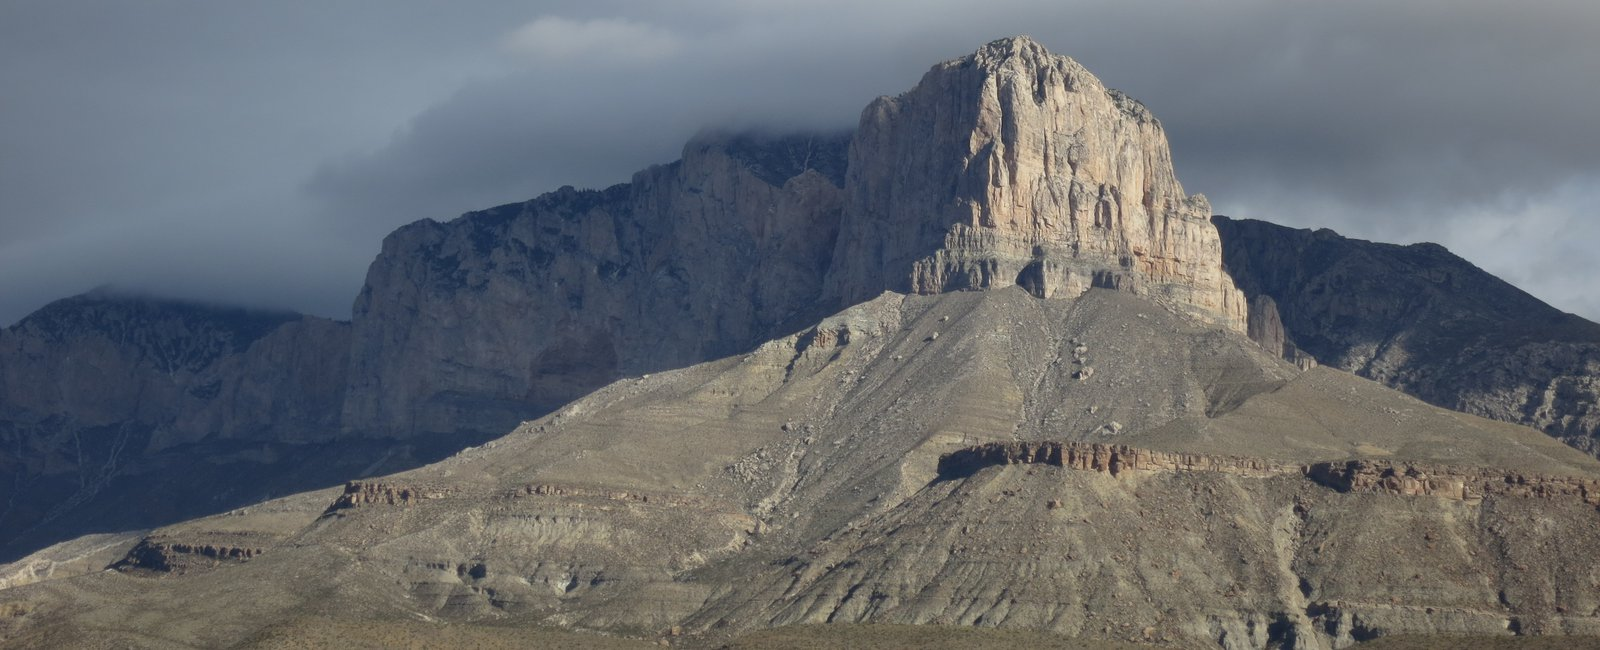 View of El Capitan and the Western Escarpment of Permian-age strata exposed in Guadalupe Mountains National Park, Texas